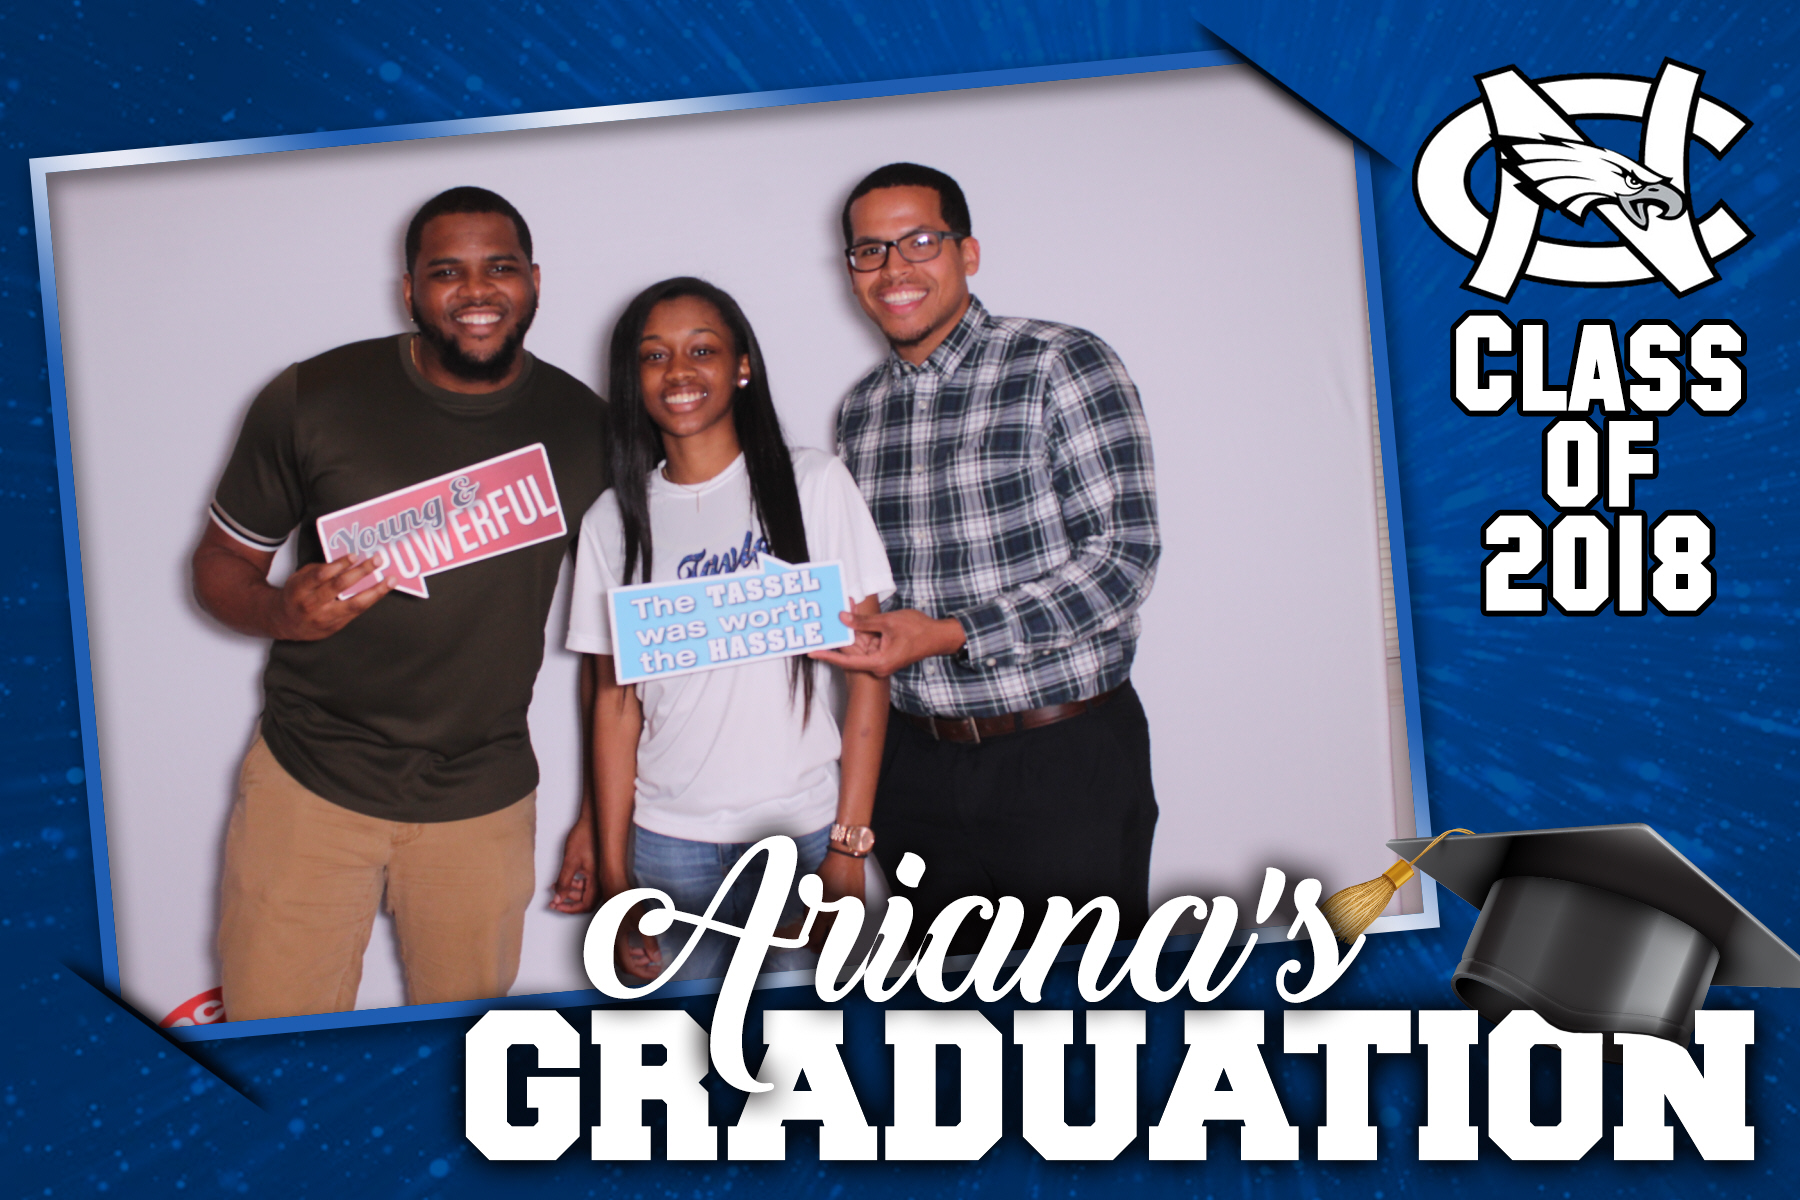 Ariana Graduation Party